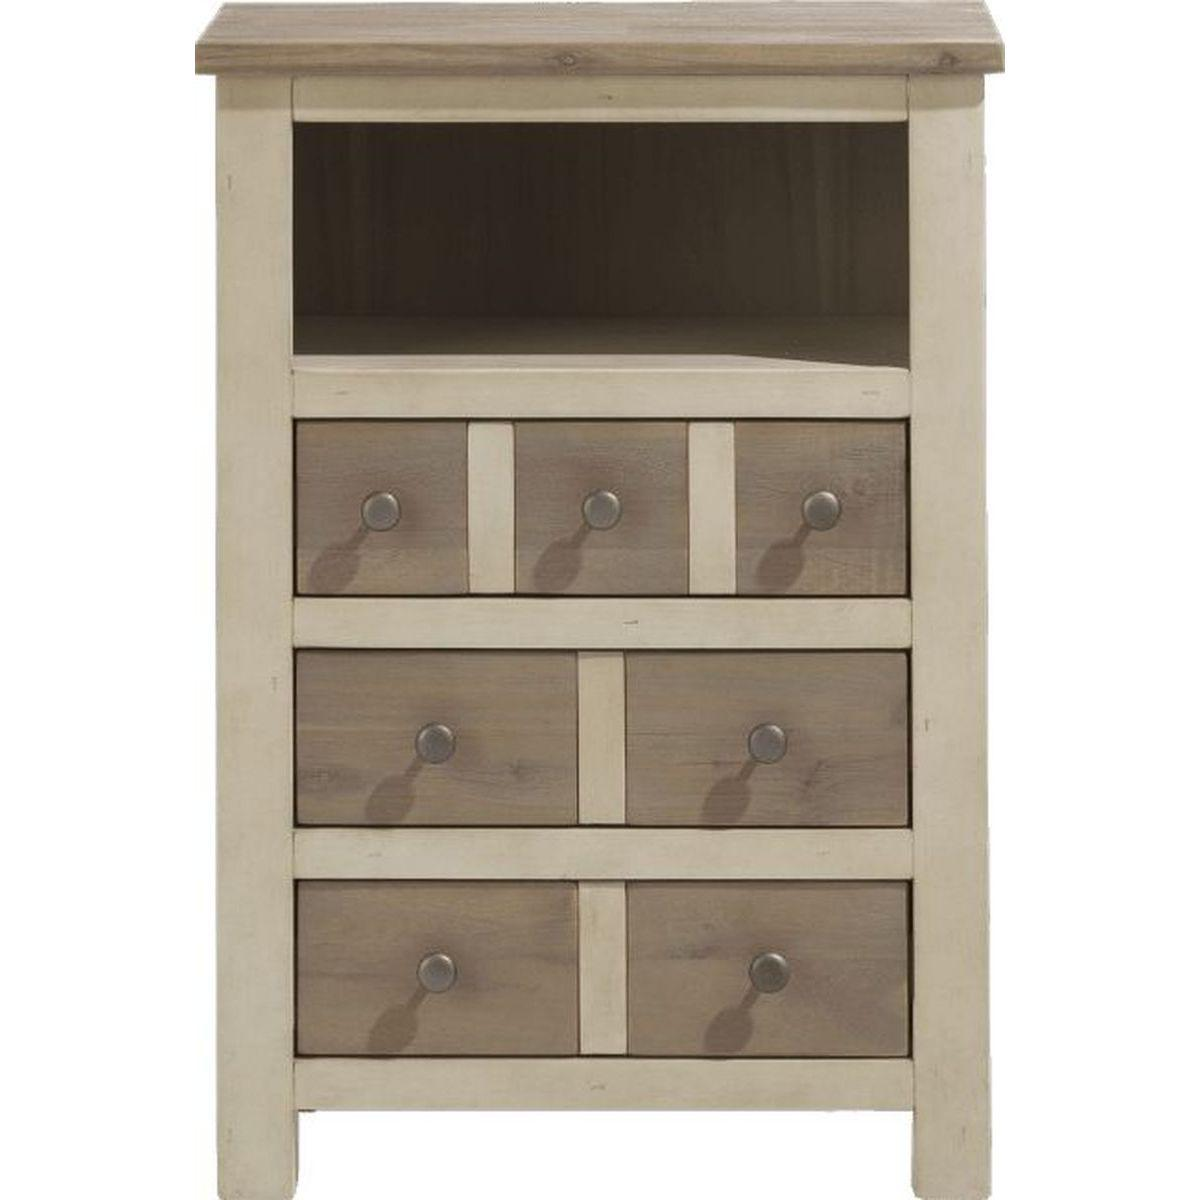 LE PORT by H&H Commode 59cm